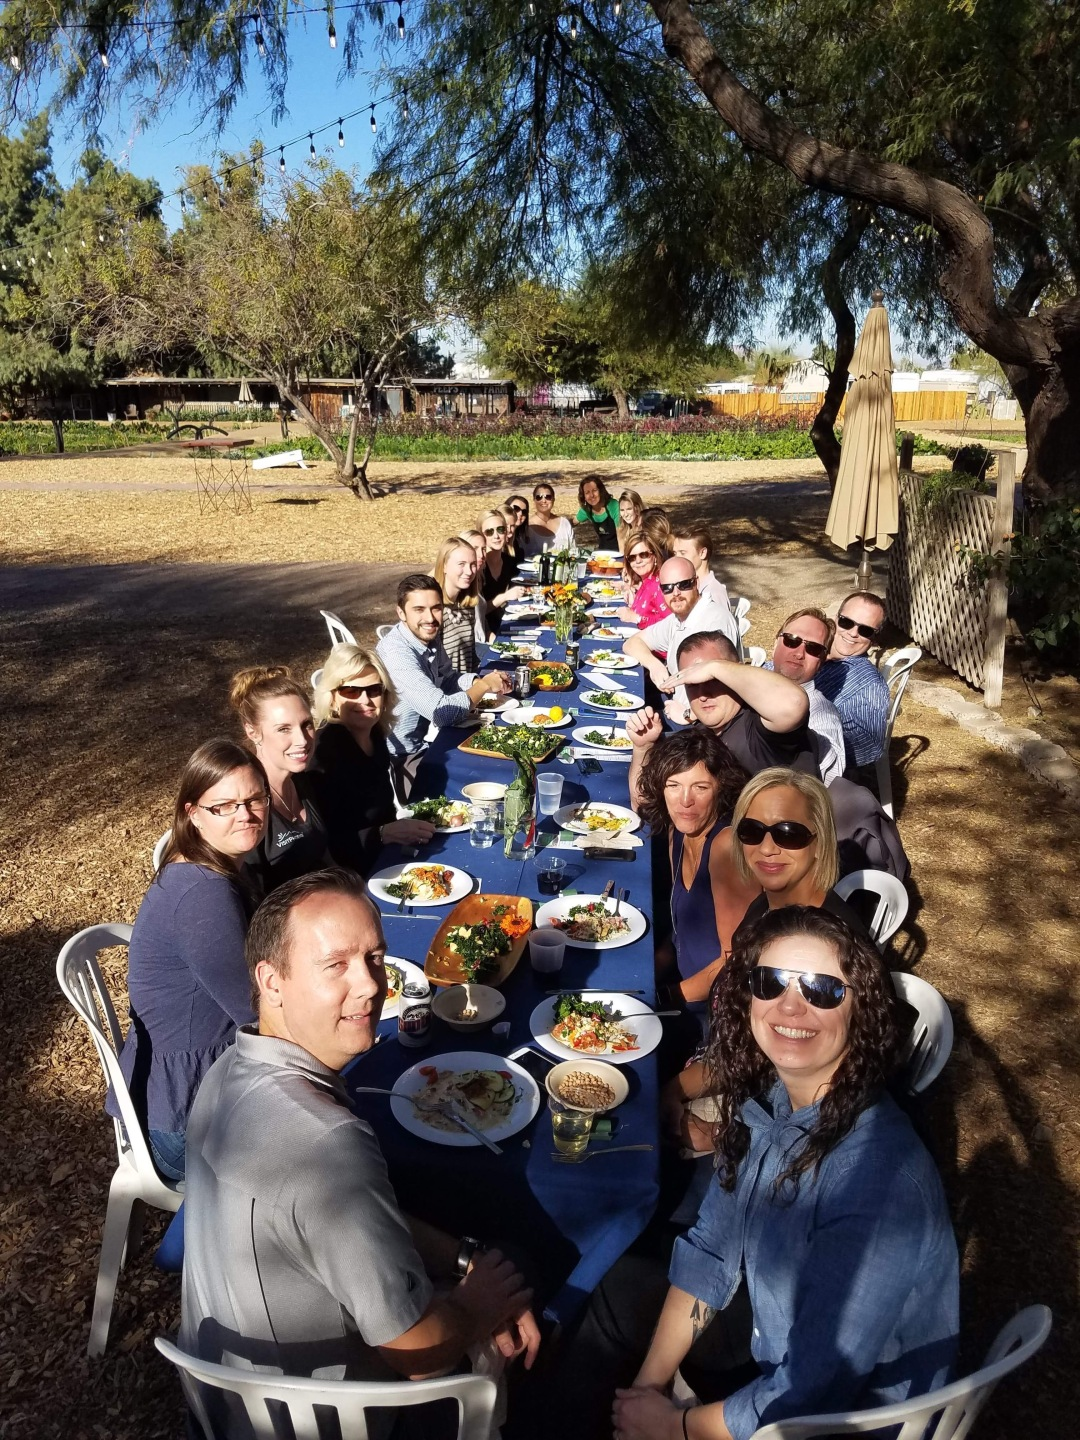 A-12-VisitPhoenix-ExperienceNutrition-TeamBuilding-Tableeating-